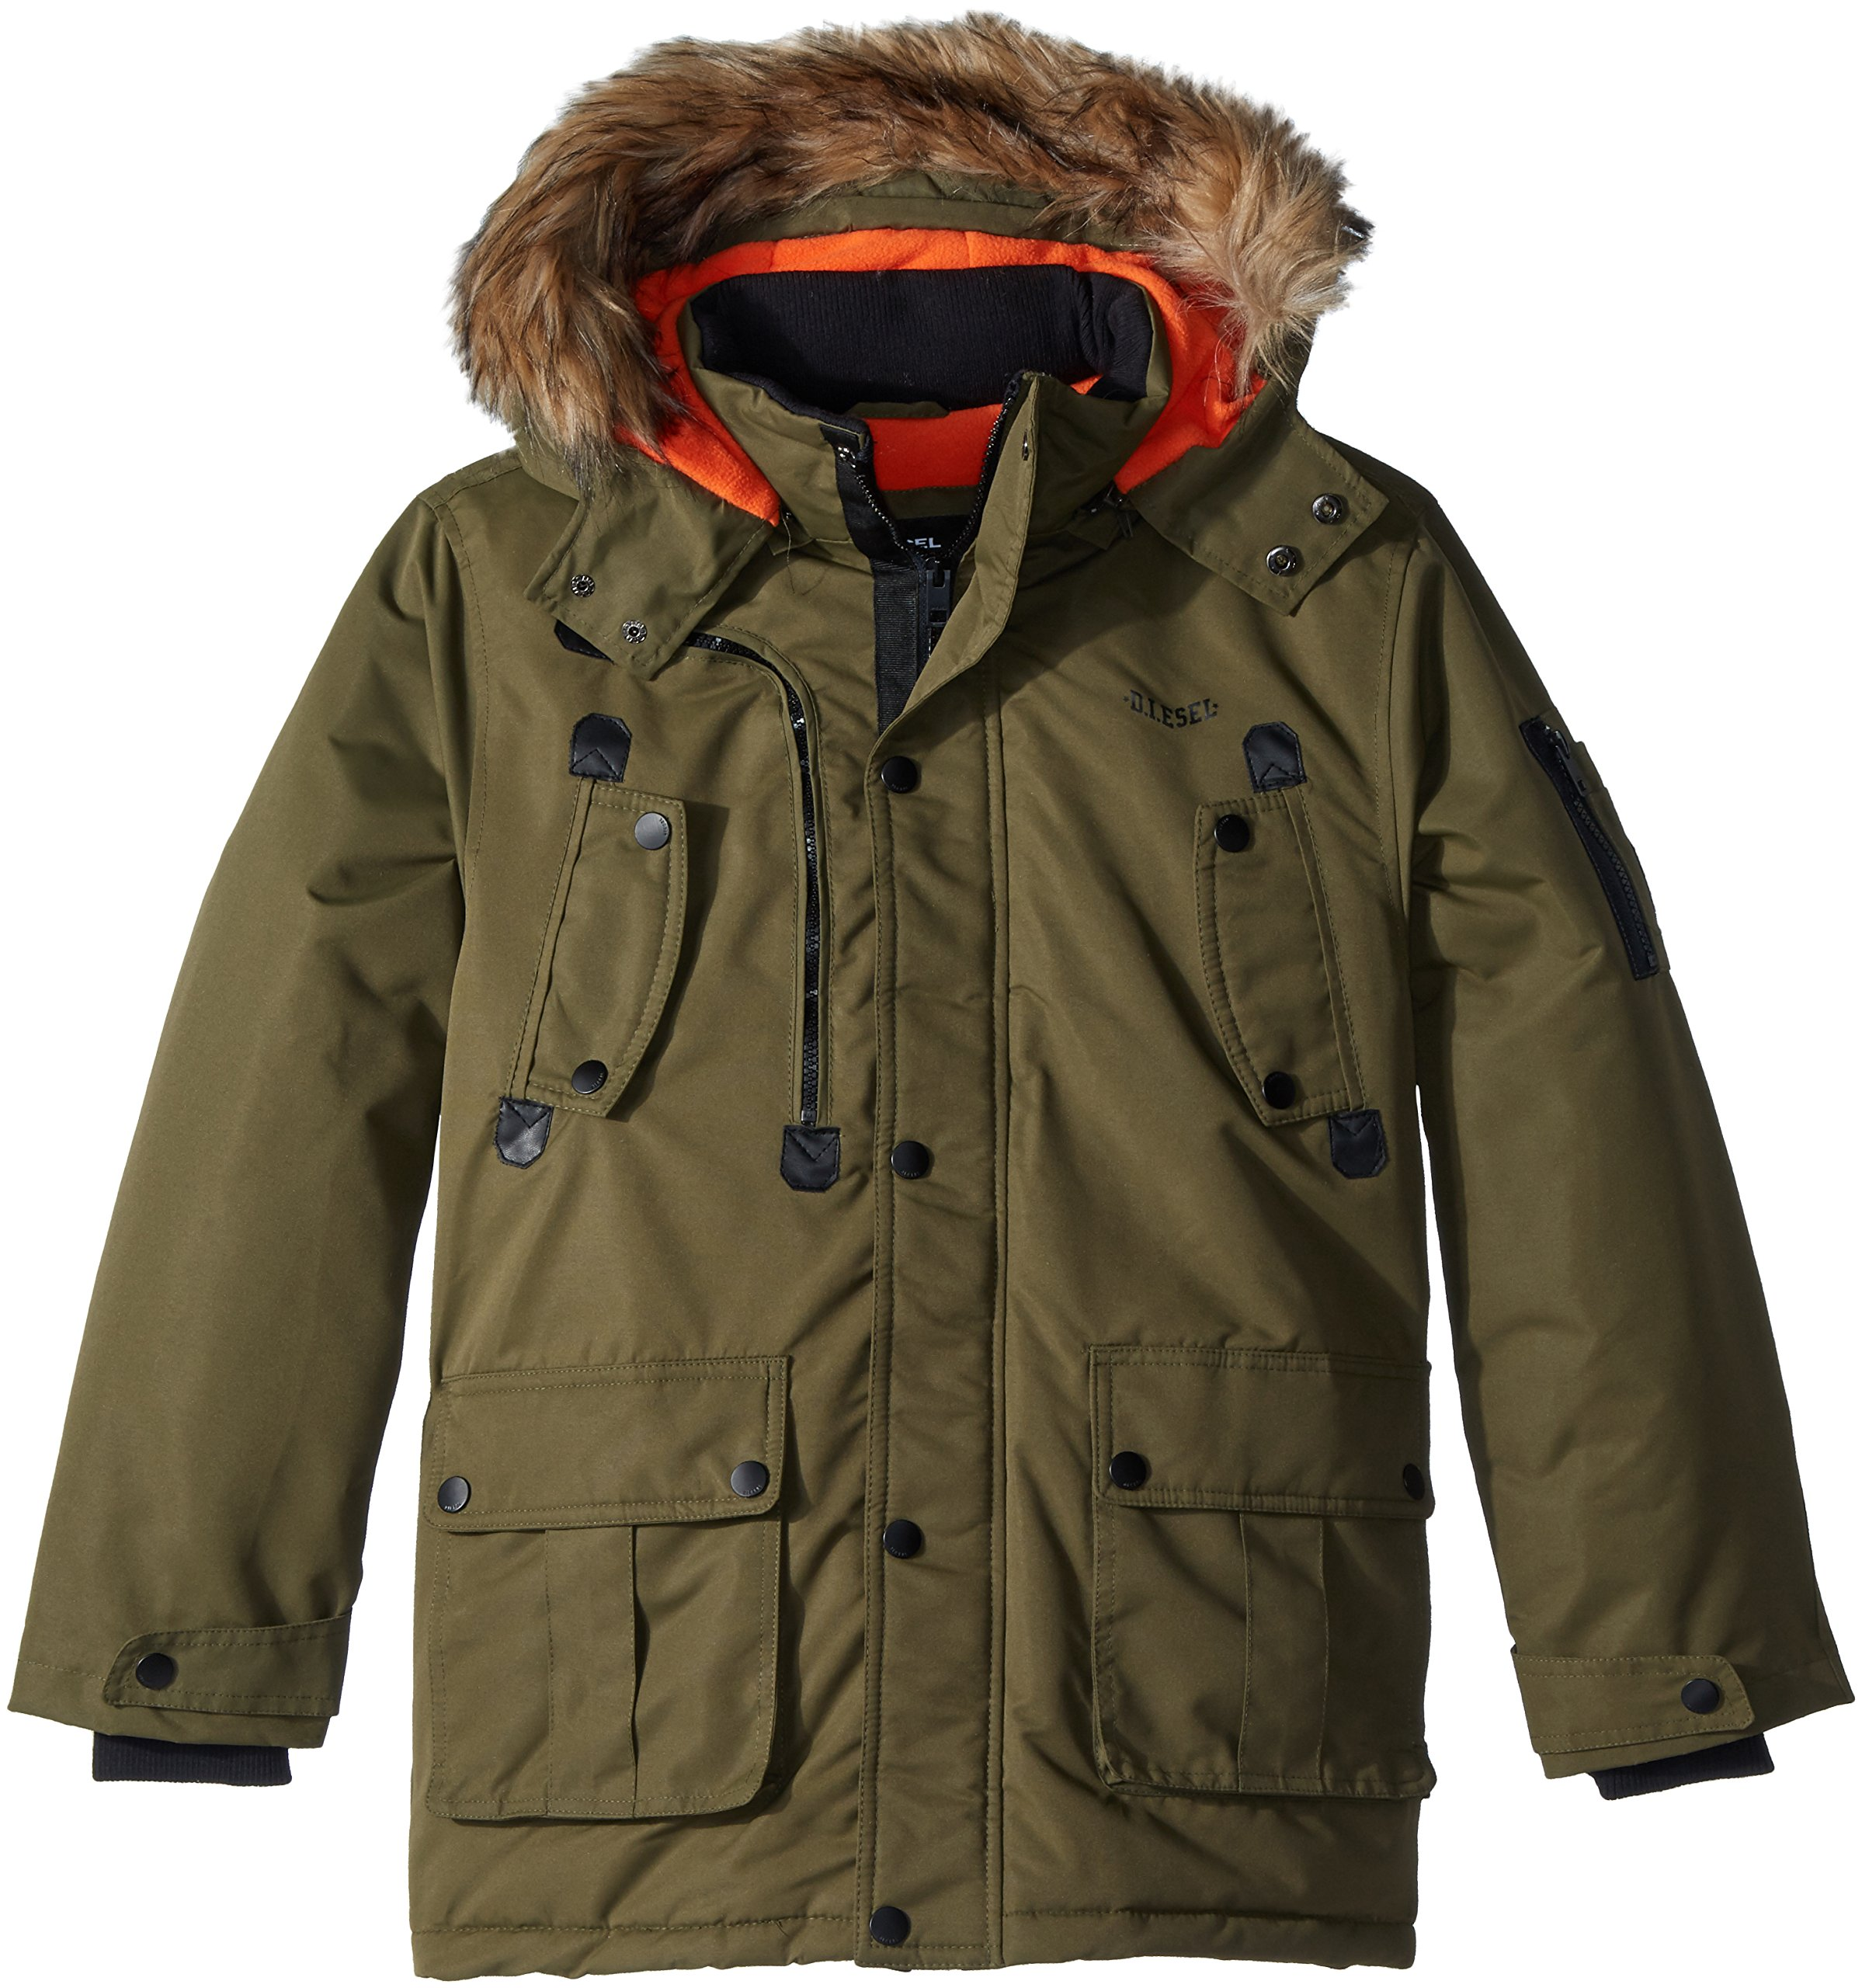 Diesel Boys' Little Outerwear Jacket (More Styles Available), Faux Fur Parka-DS68-Olive 7